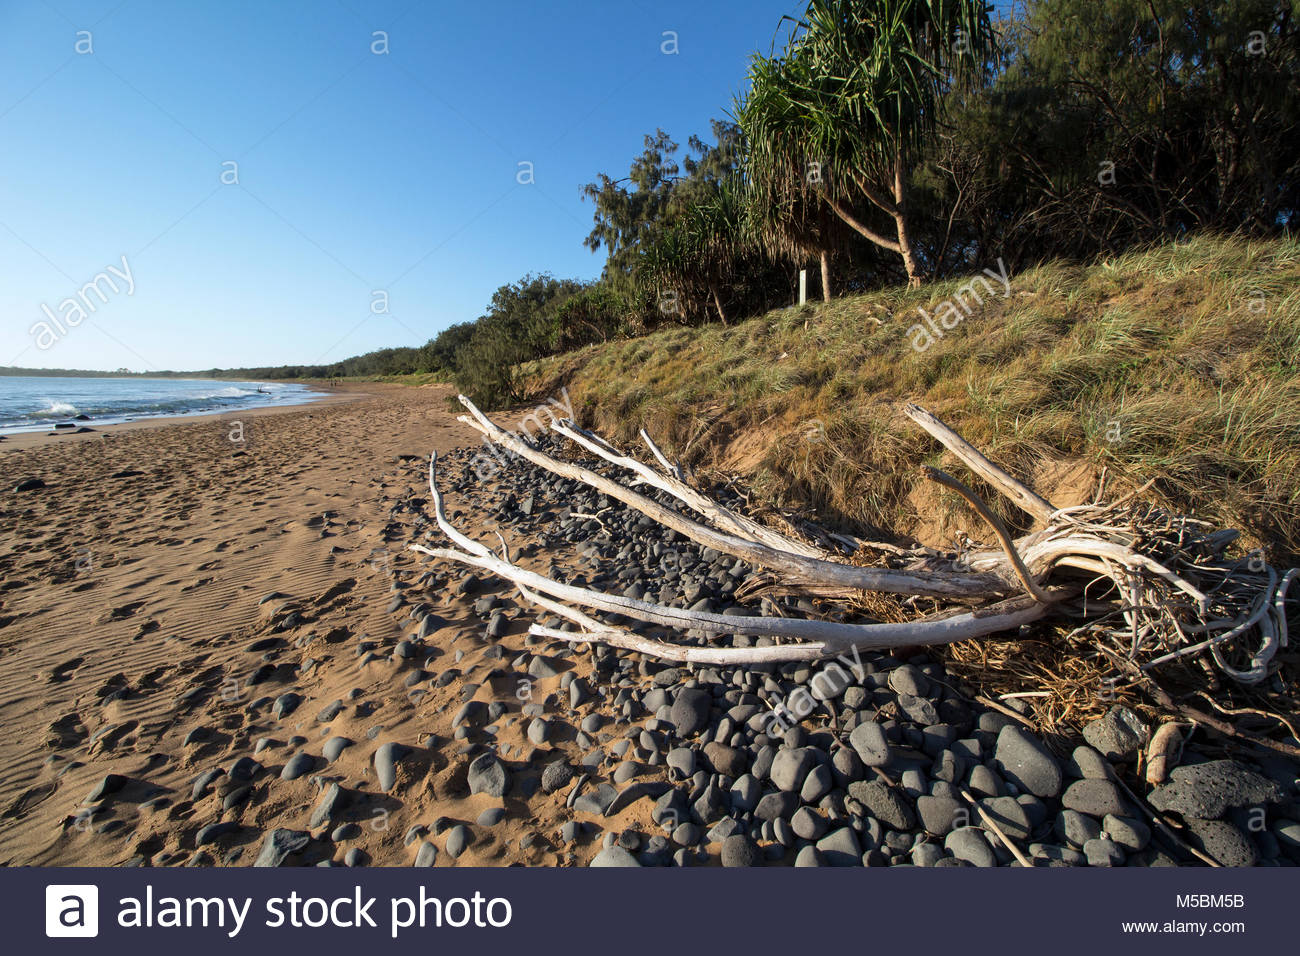 Mon Repos Beach in Queensland, Australia. Showing a driftwood log and rocks in the morning light. - Stock Image